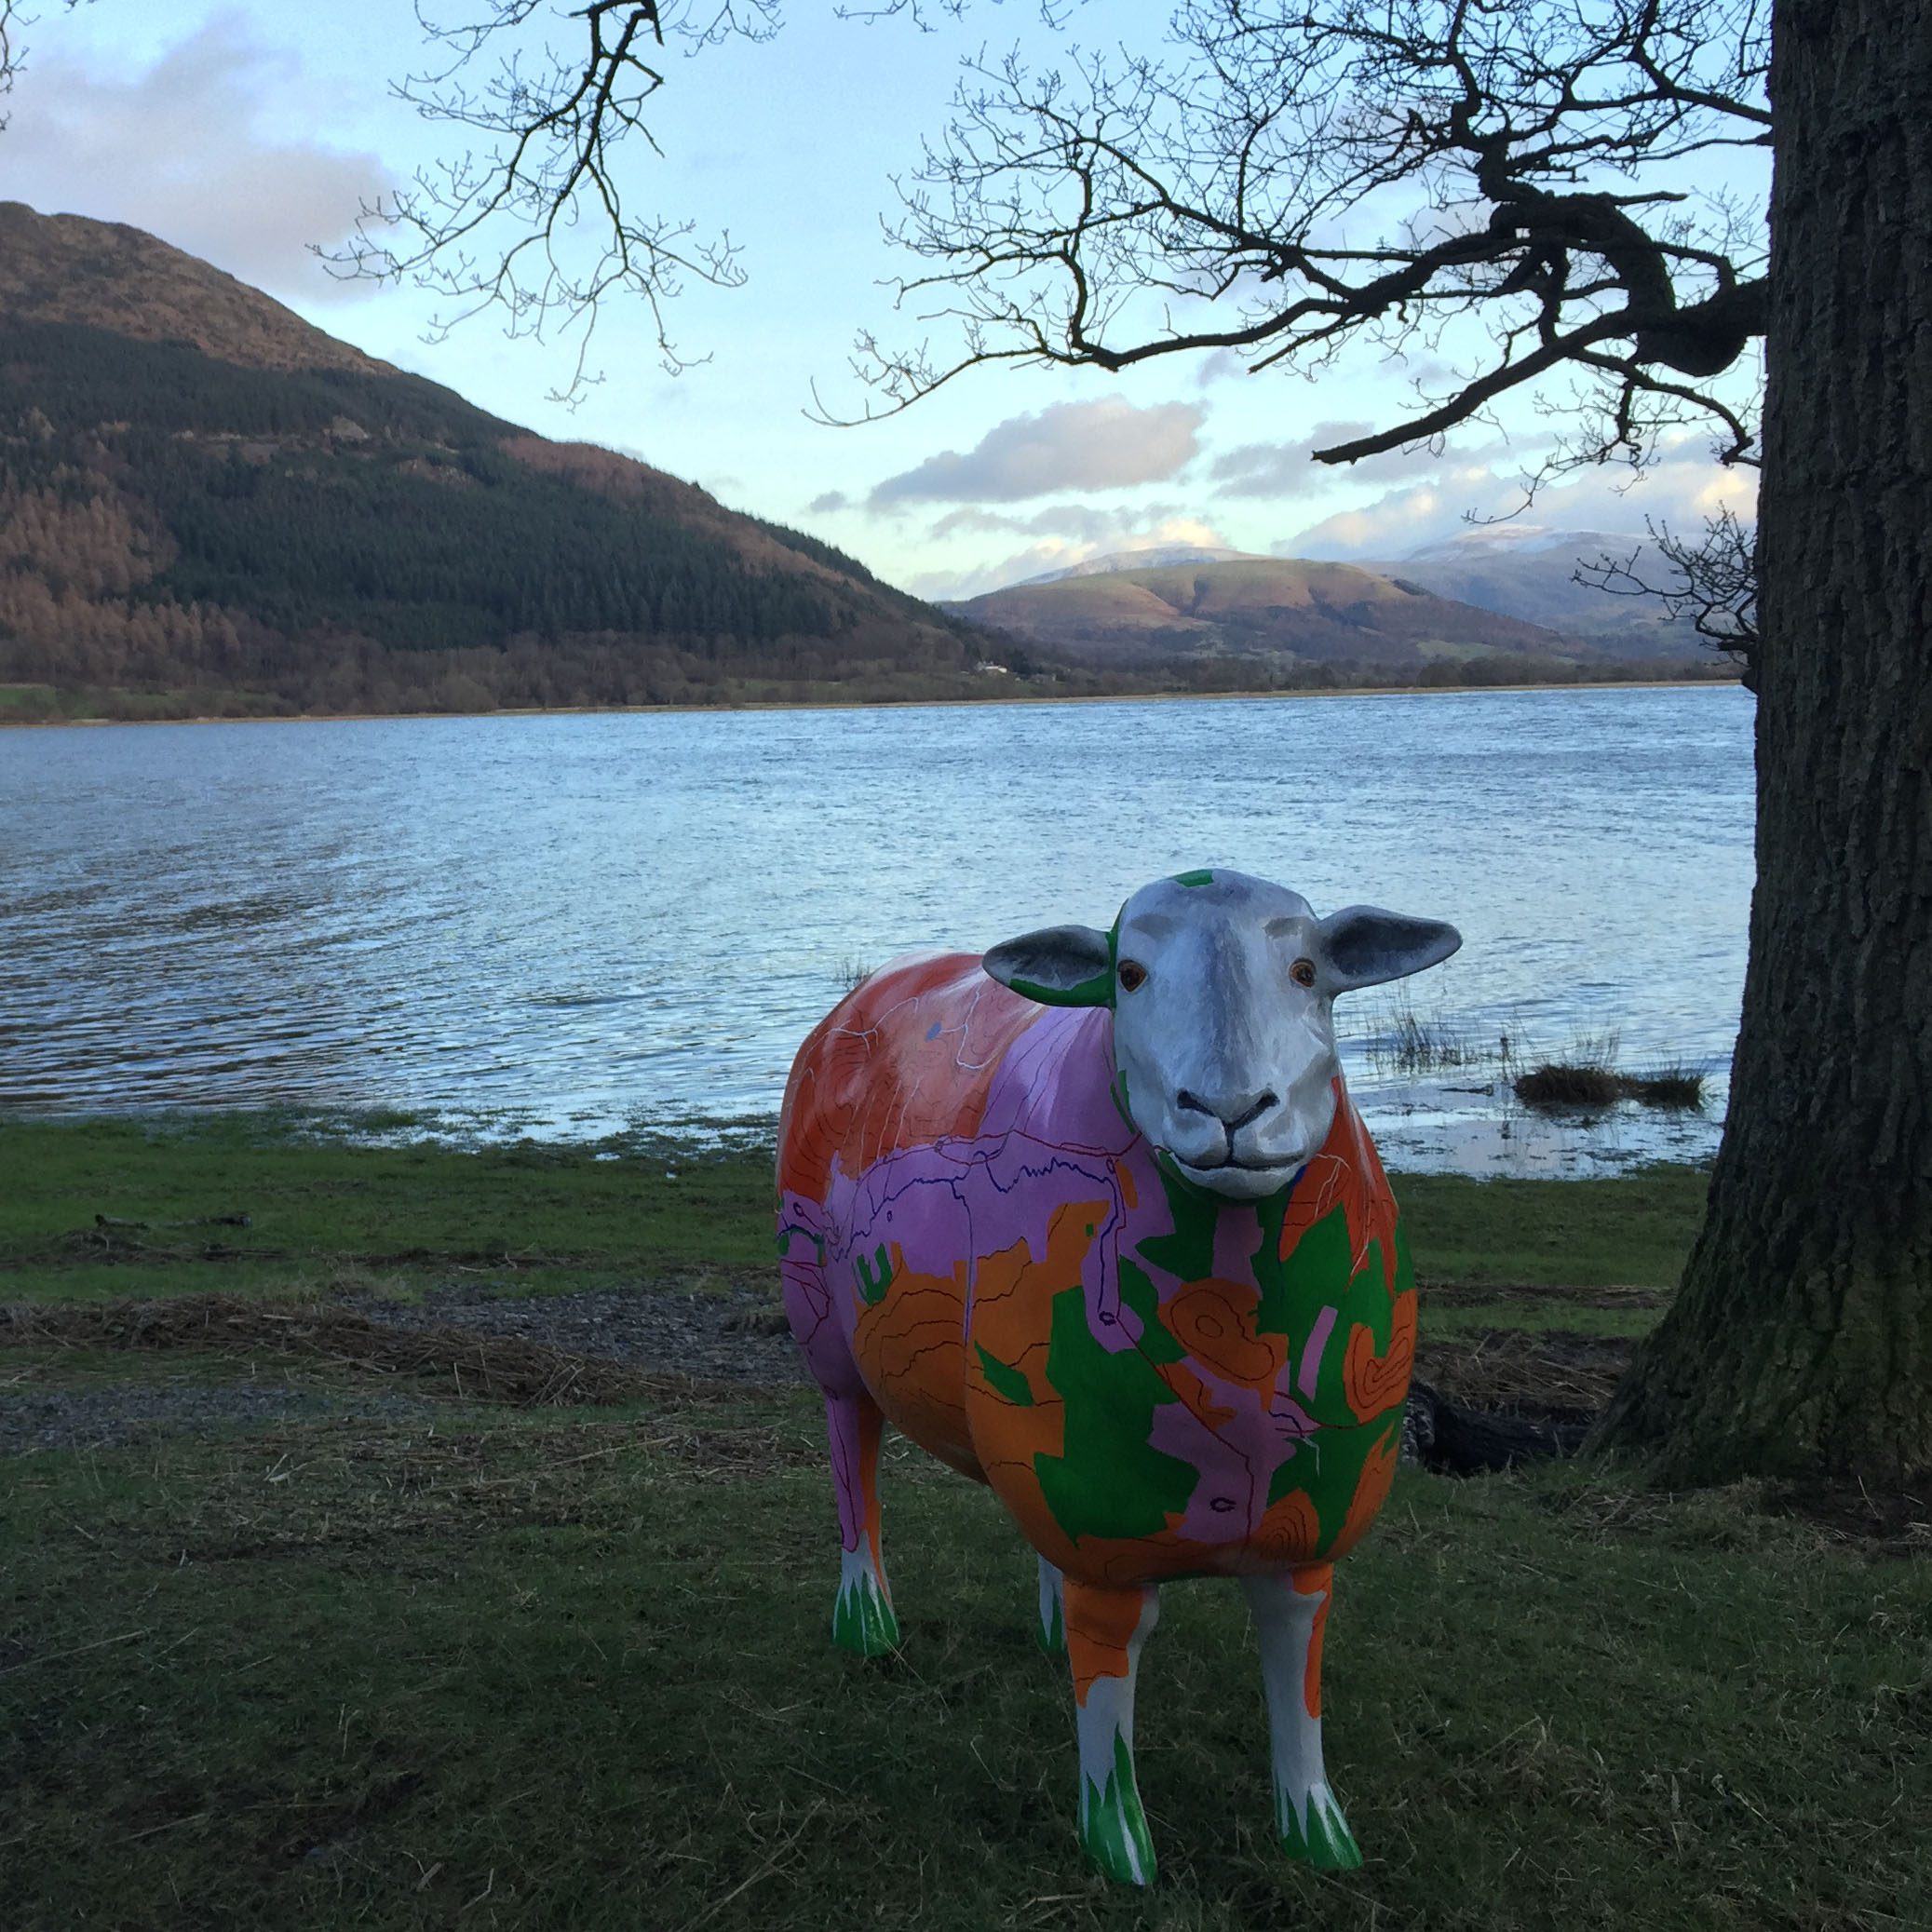 Image for article Go Herdwick with our Fell Top Georgy